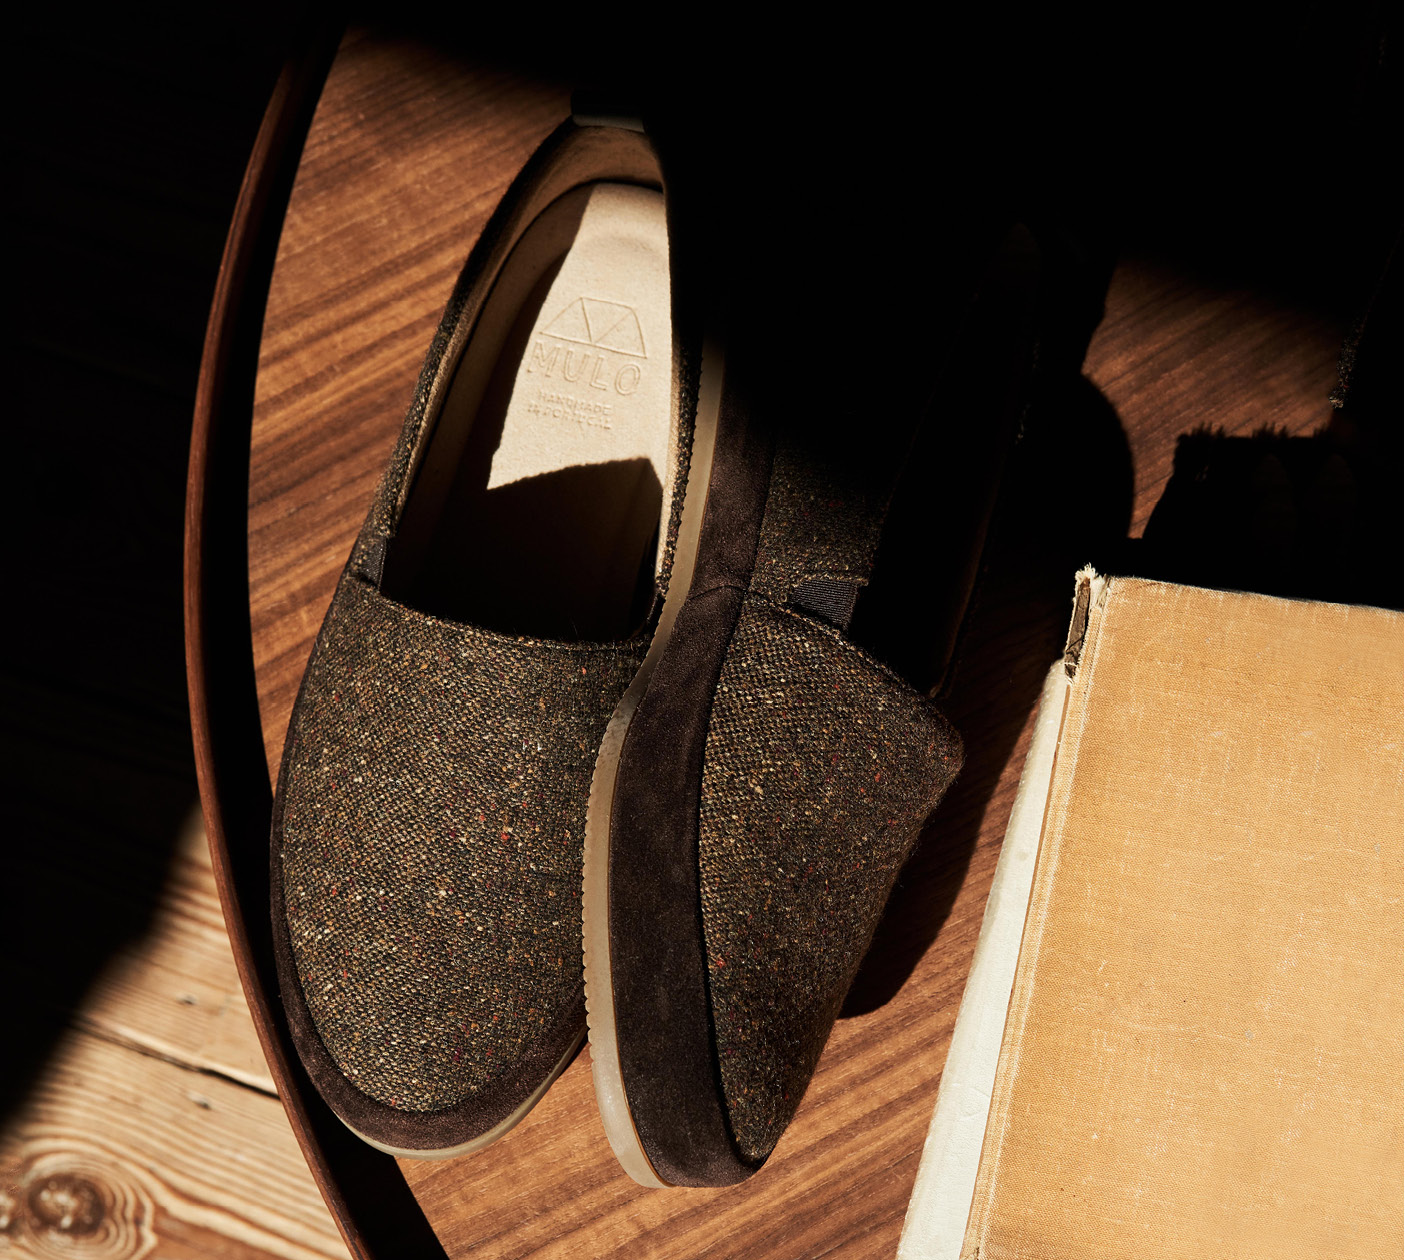 New Mens Slippers - Brown Donegal Tweed Slippers